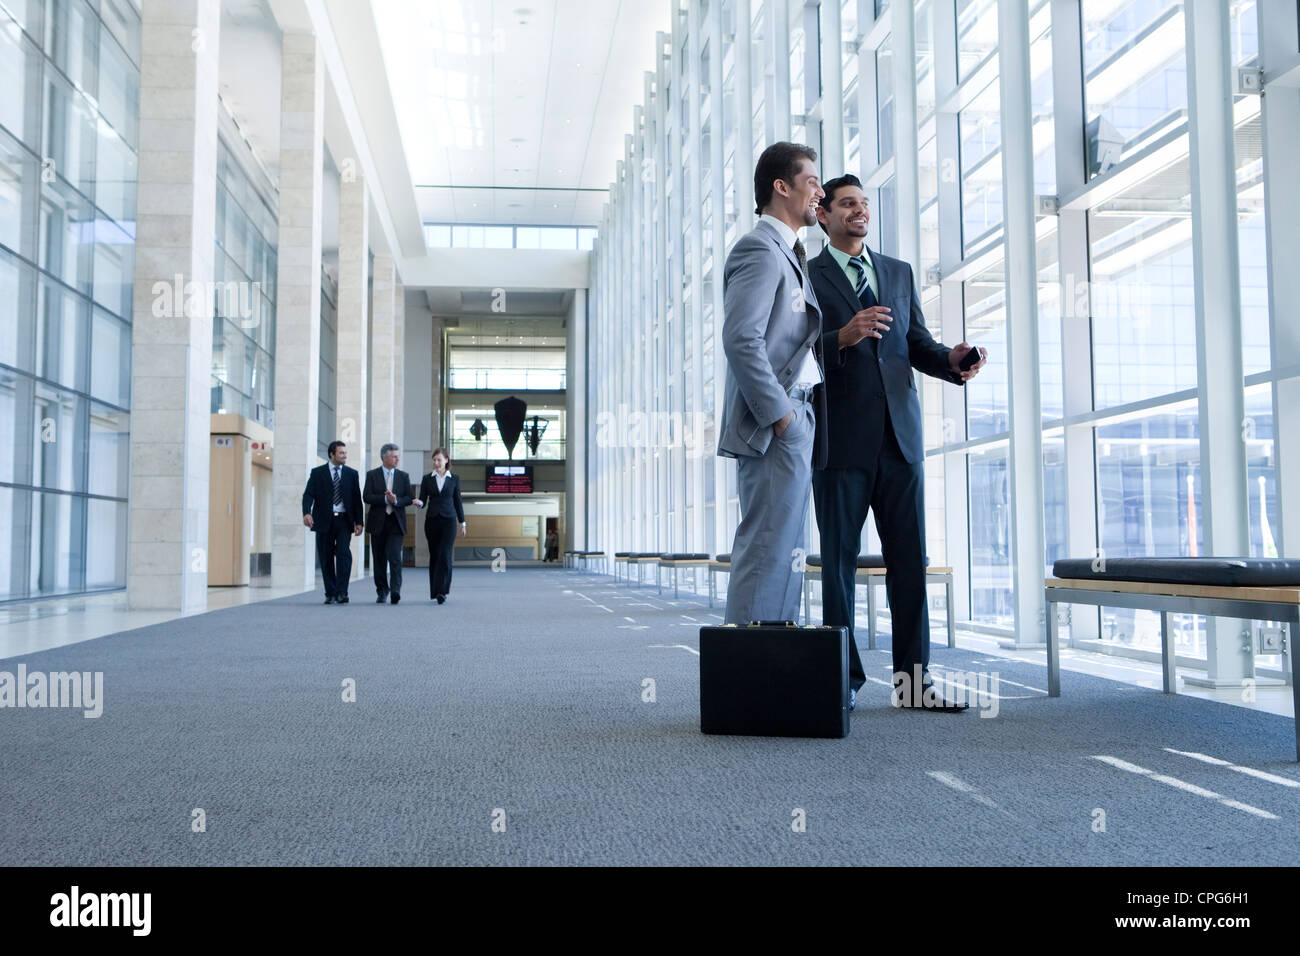 Two businessmen talking in office hallway. Three business people walking in background. - Stock Image